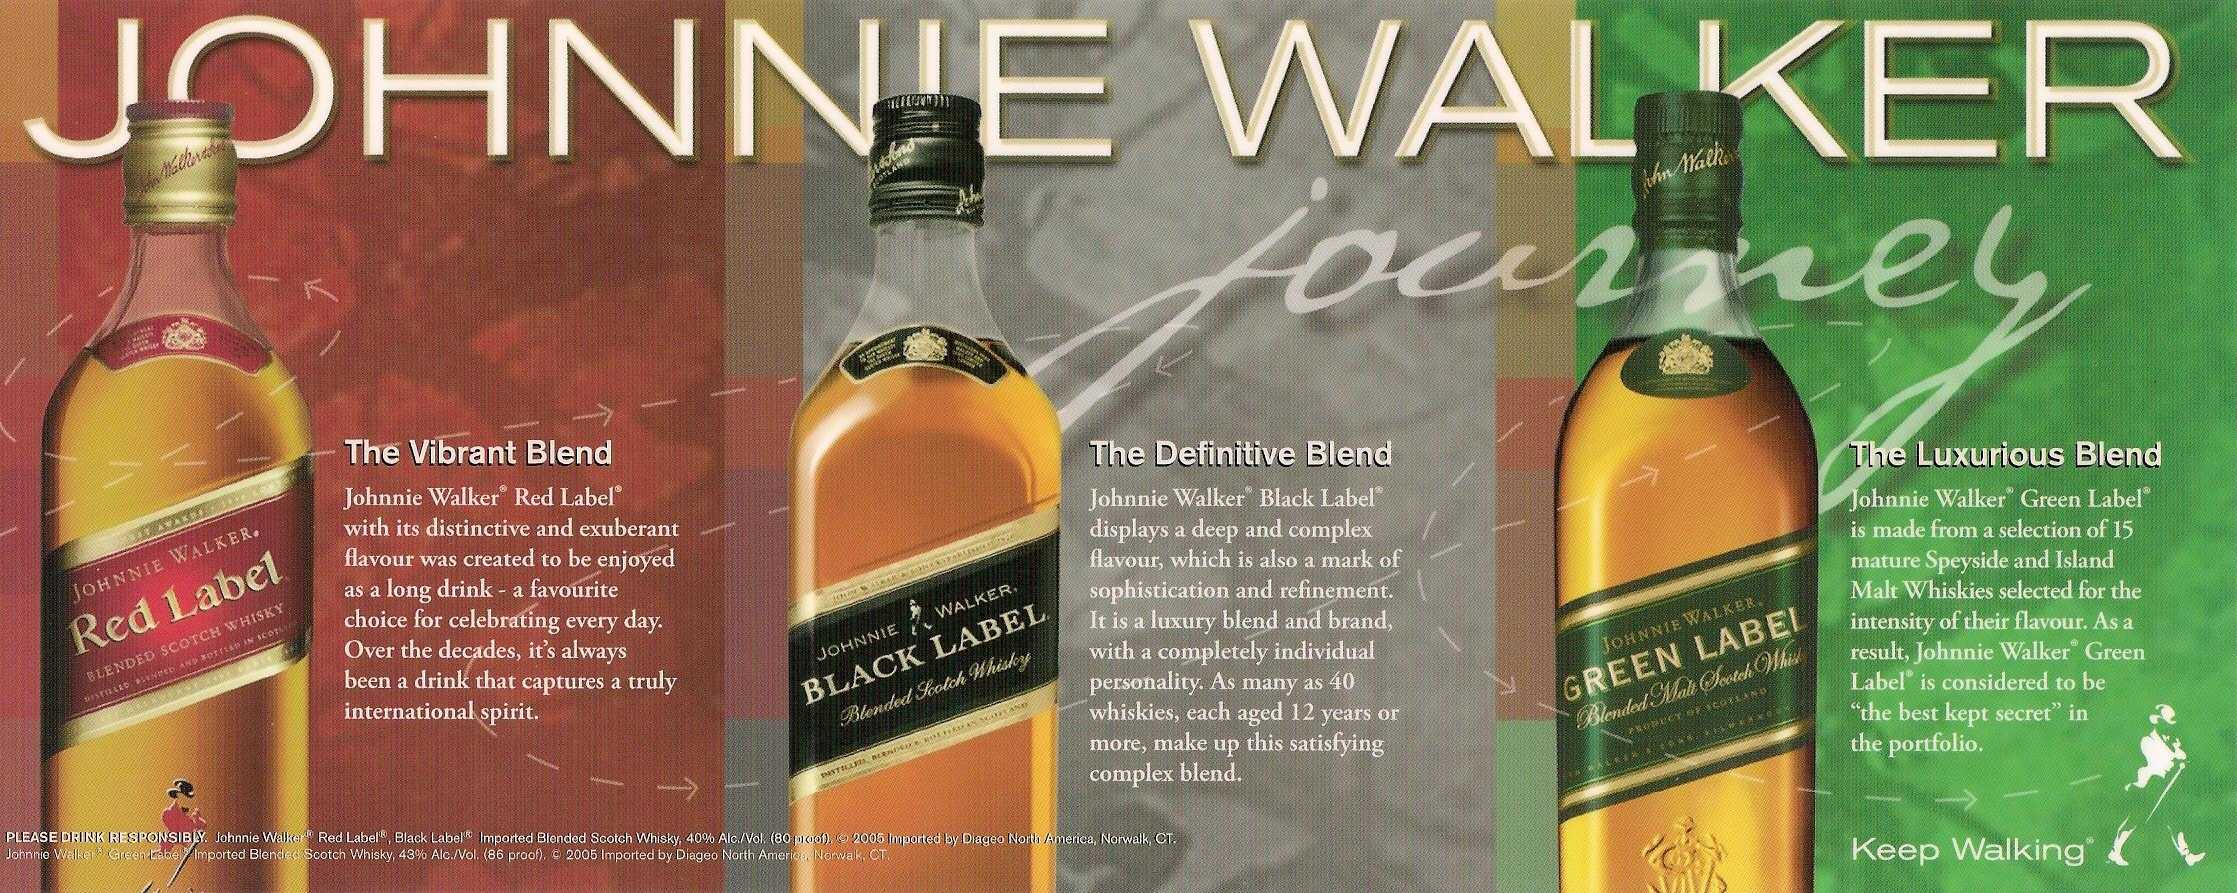 Johnny Walker Journey Cuvee Marketing